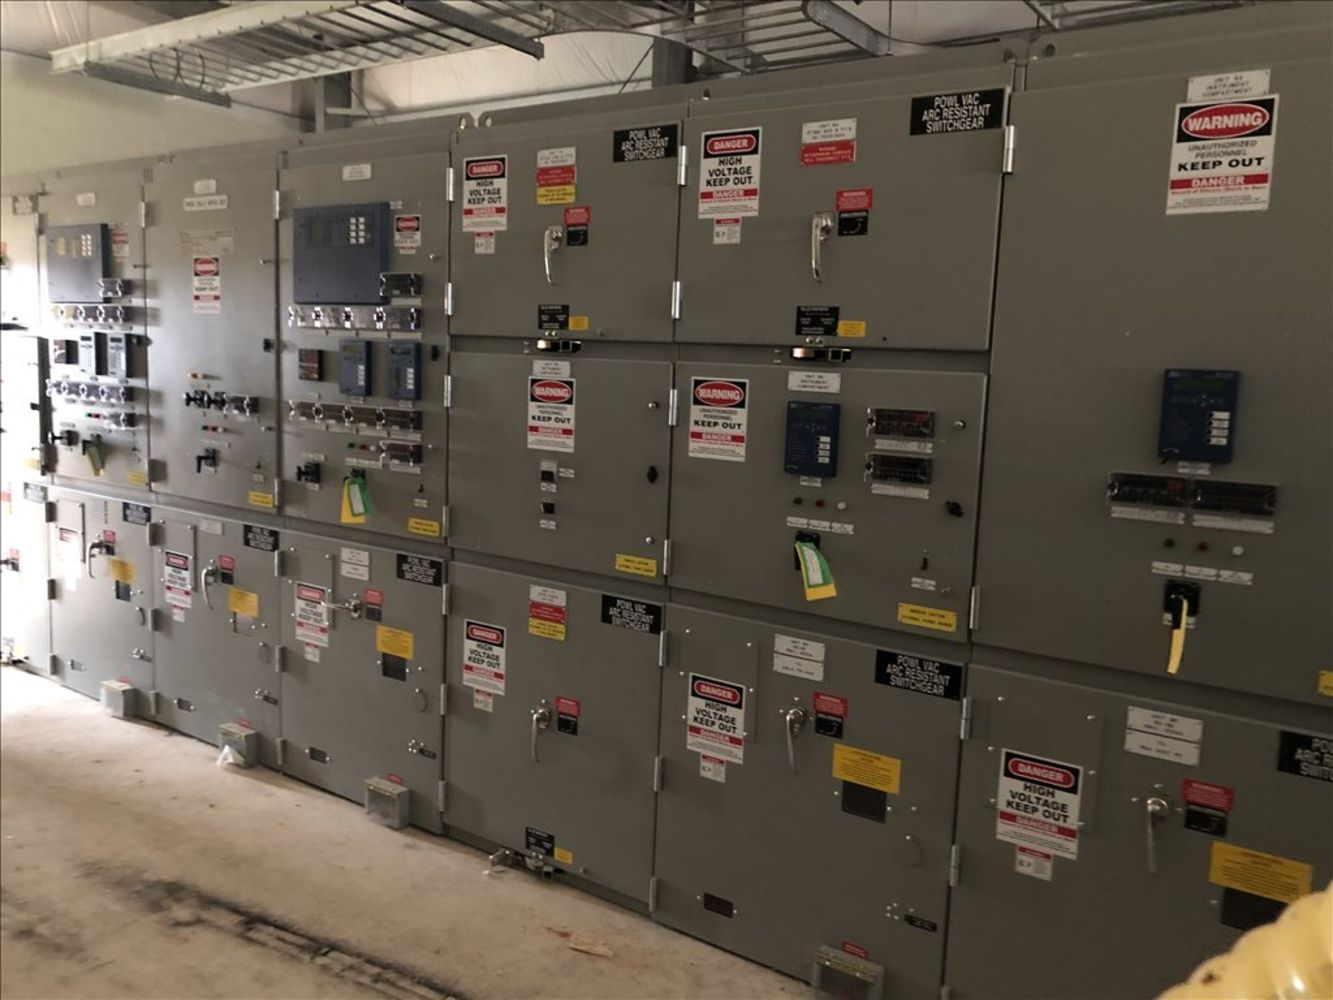 Brand New 2015 Electrical Infrastructure Equipment - Never Installed or Put Into Service